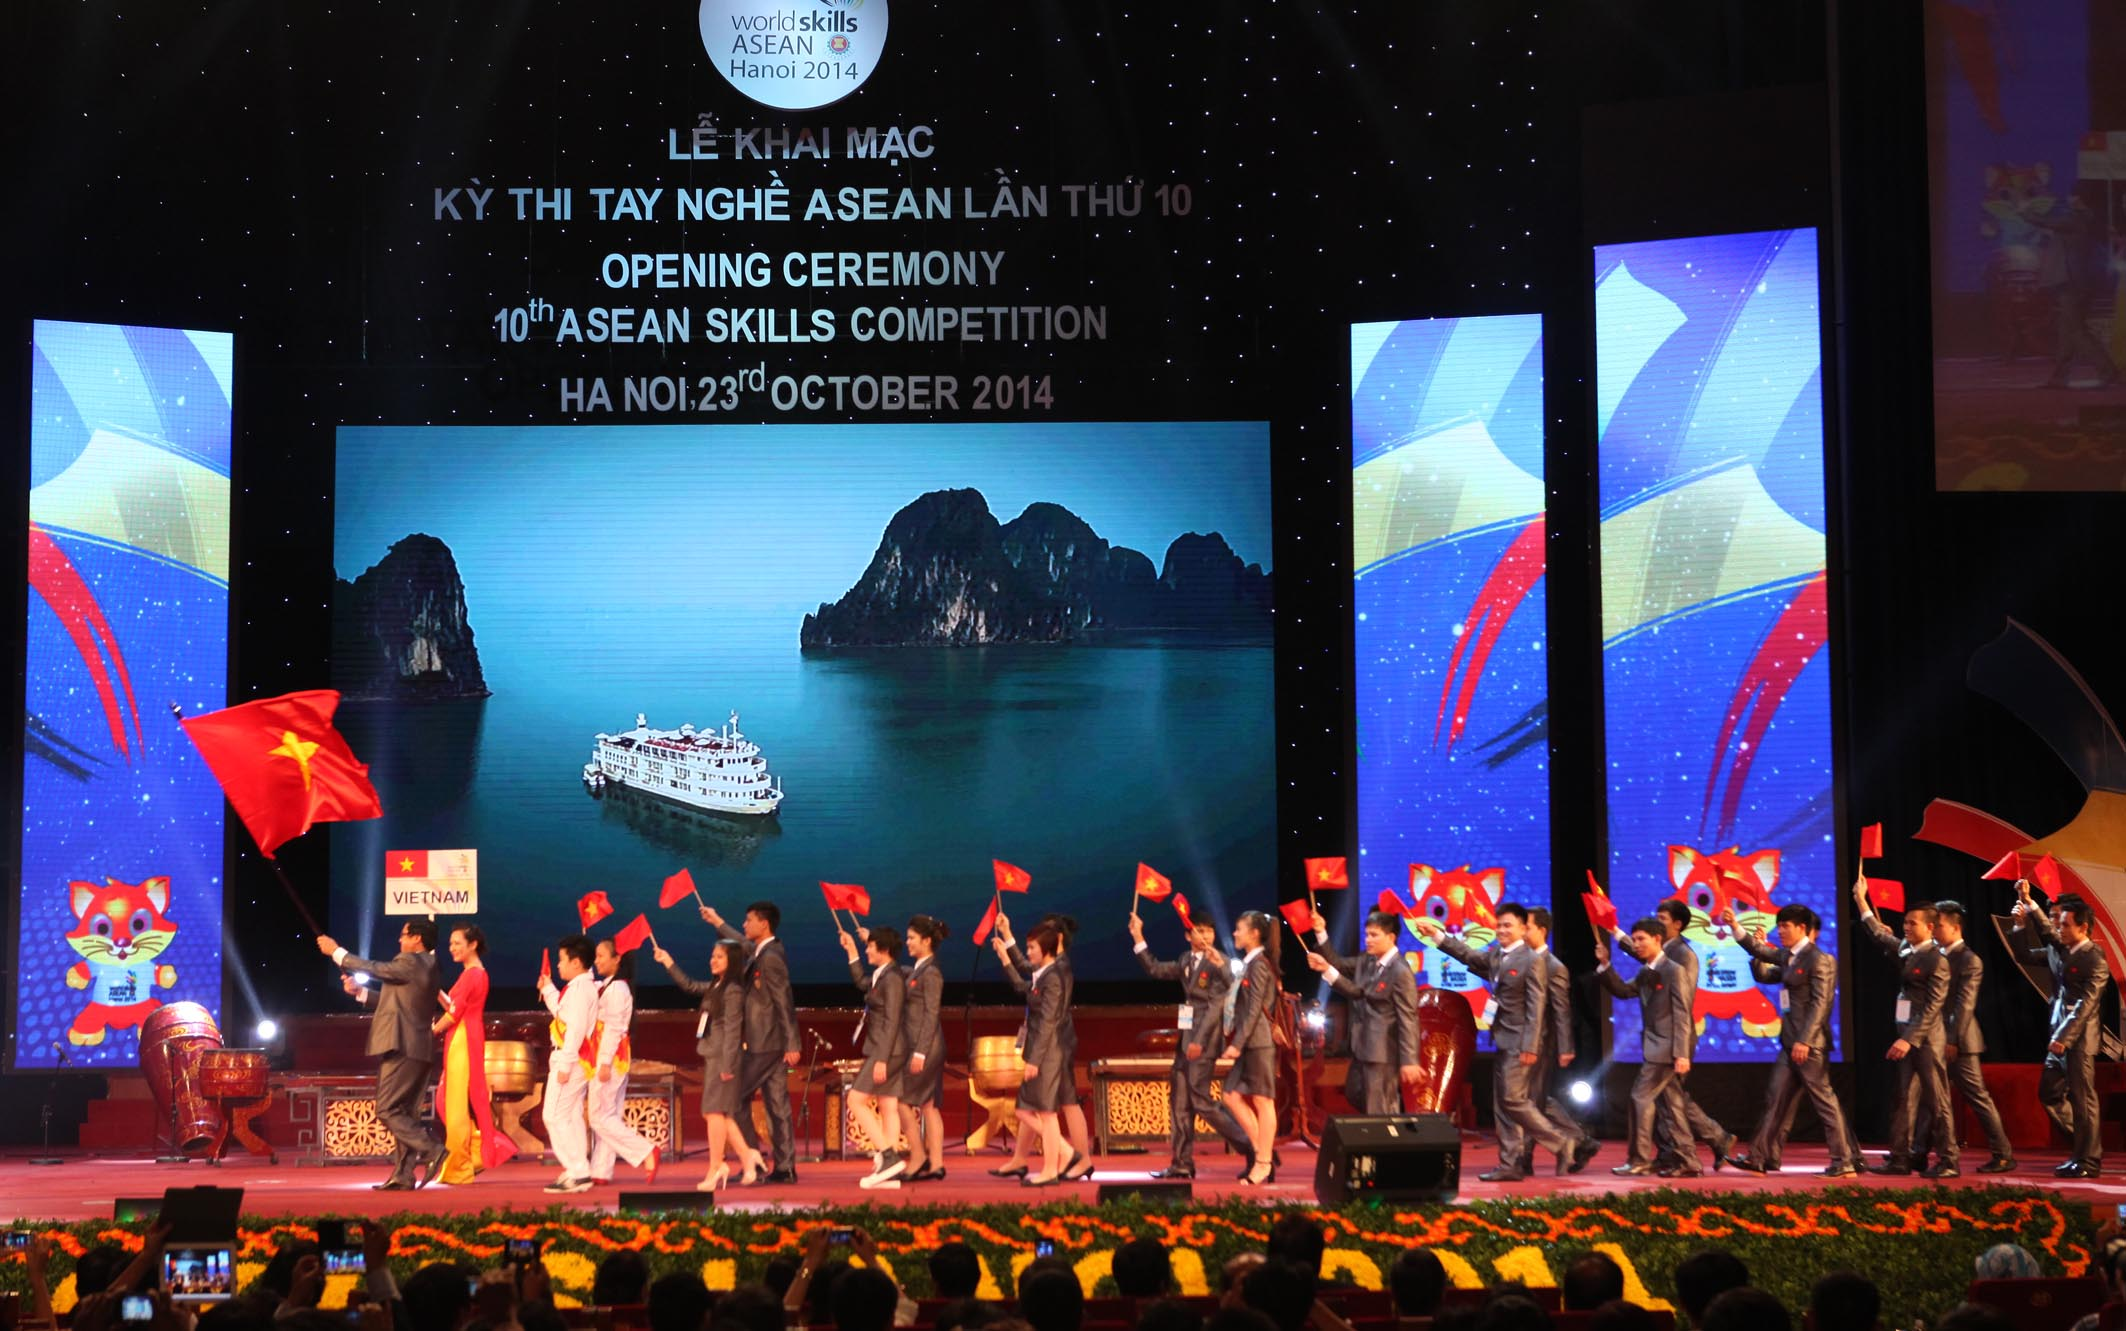 Vietnam's delegation parades into stage